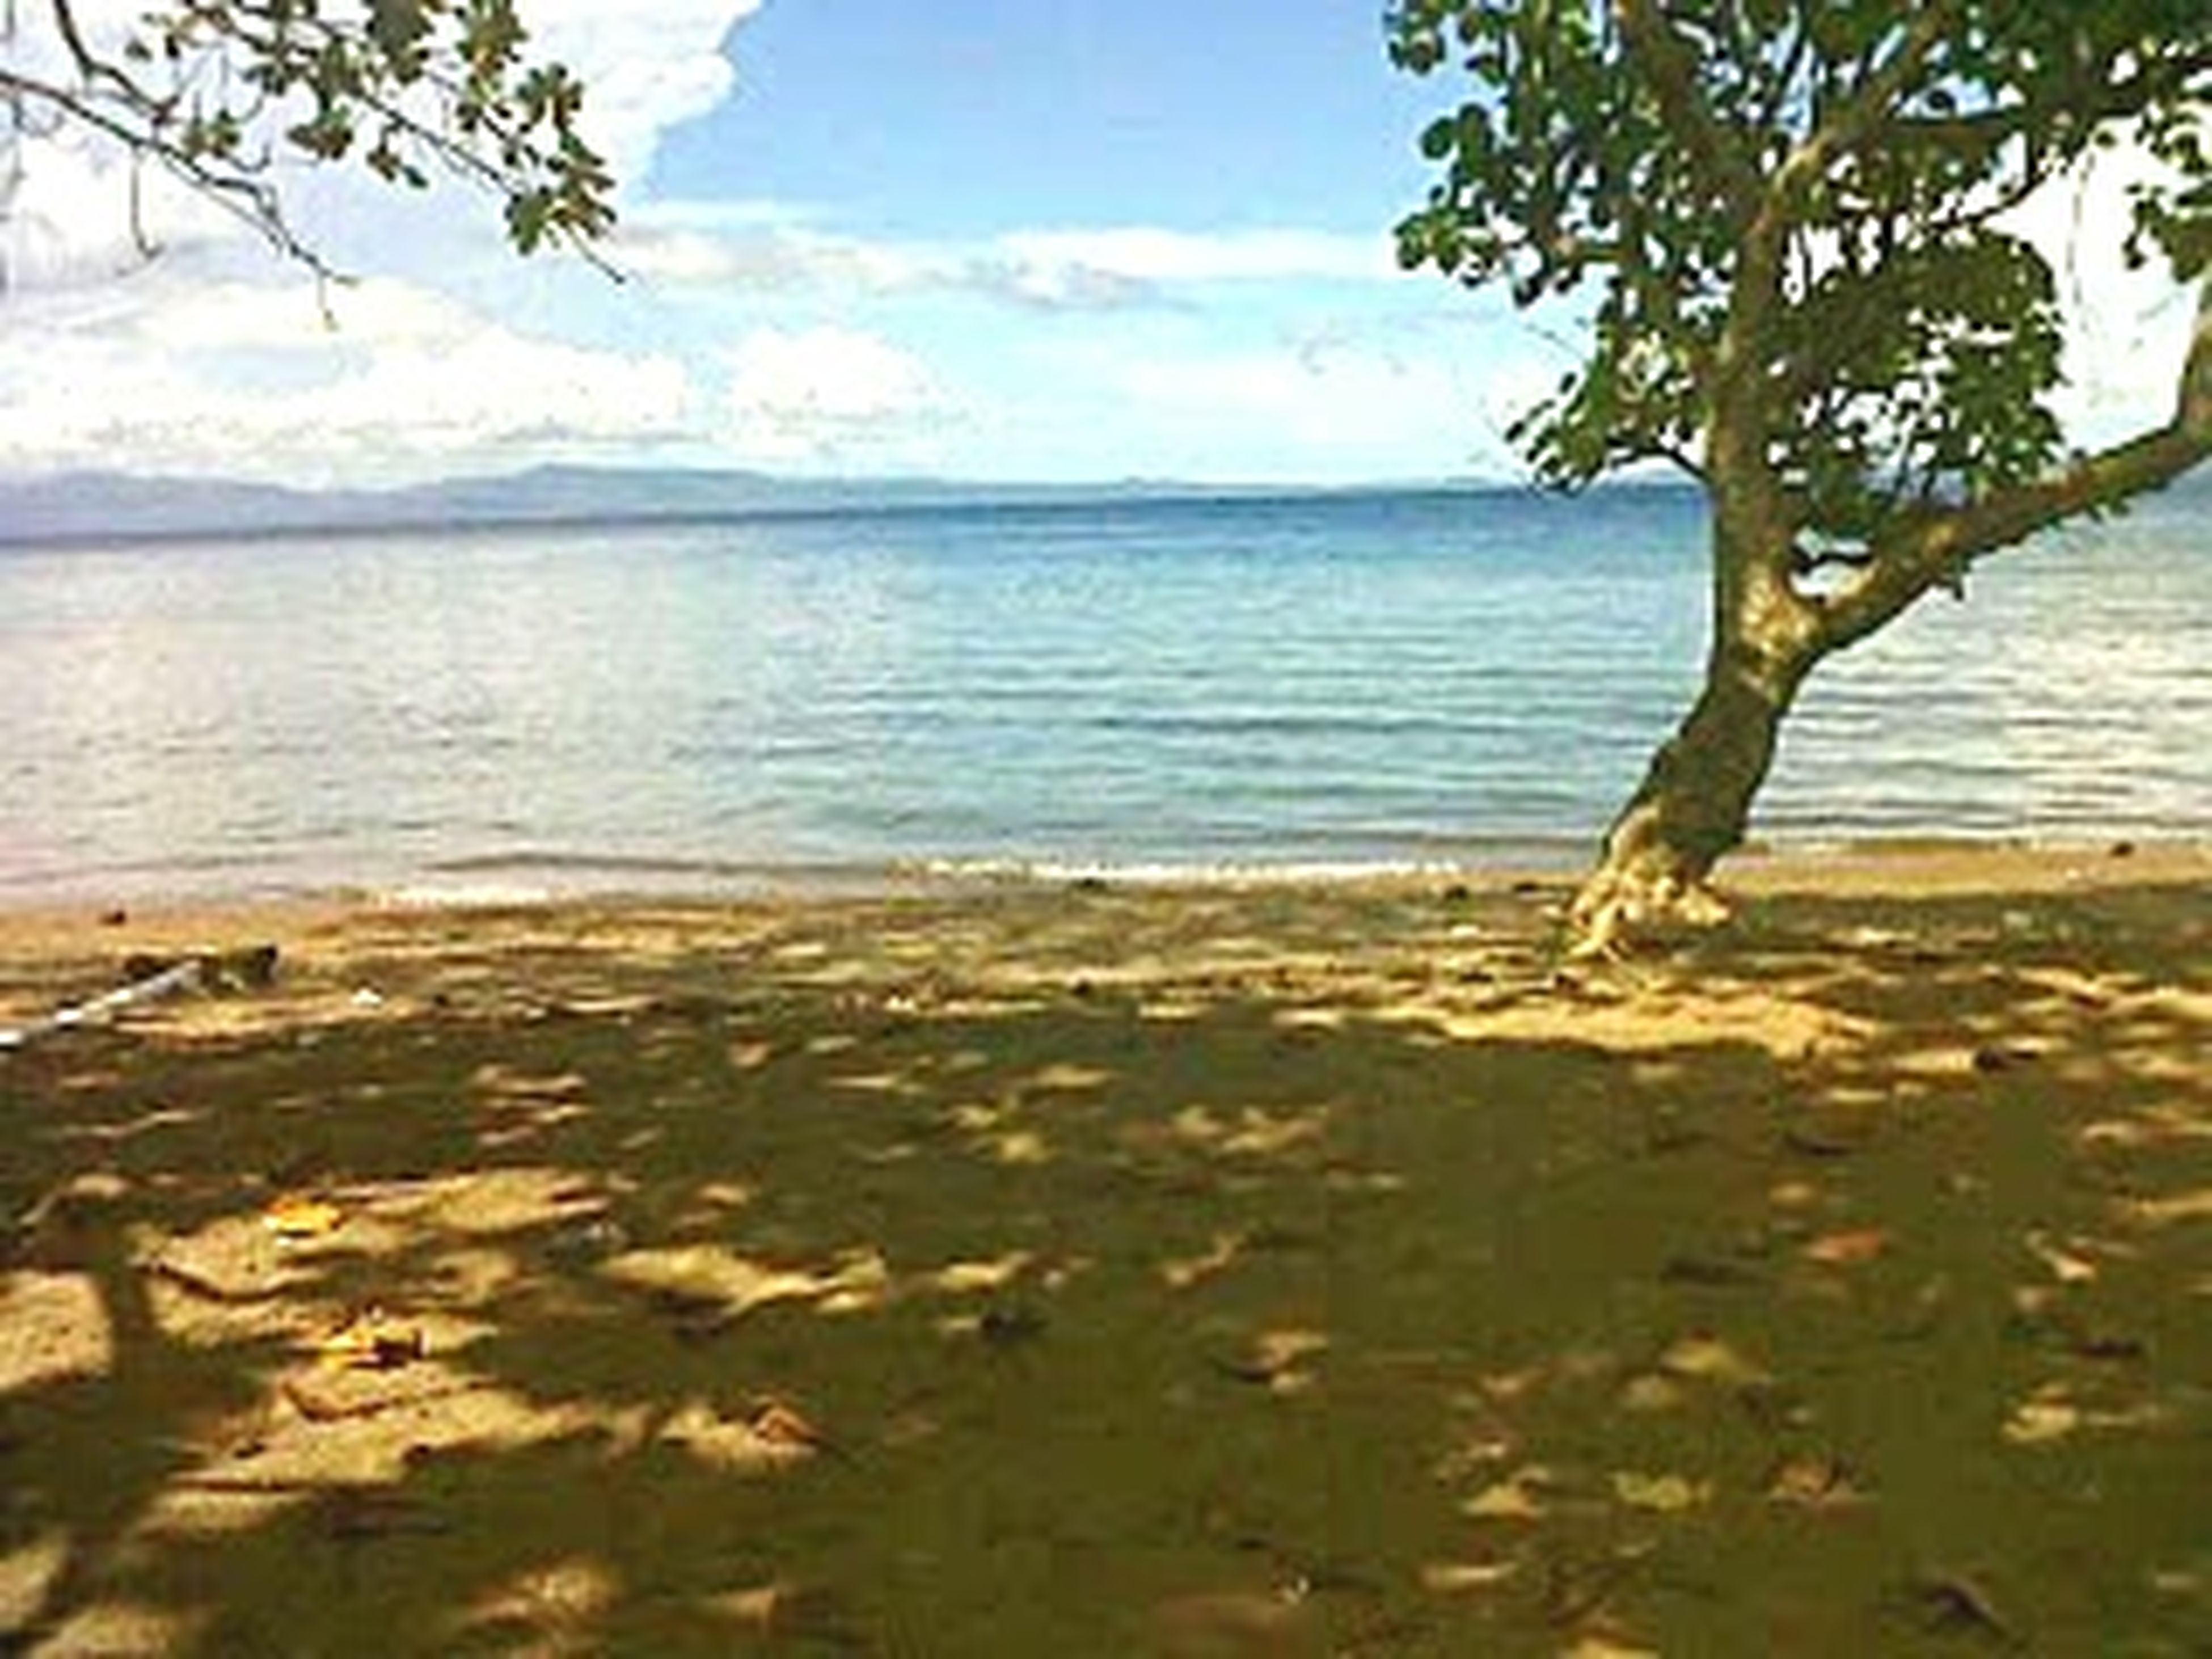 water, tranquil scene, tranquility, scenics, sea, beauty in nature, sky, tree, nature, beach, horizon over water, shore, idyllic, branch, lake, growth, day, calm, sand, outdoors